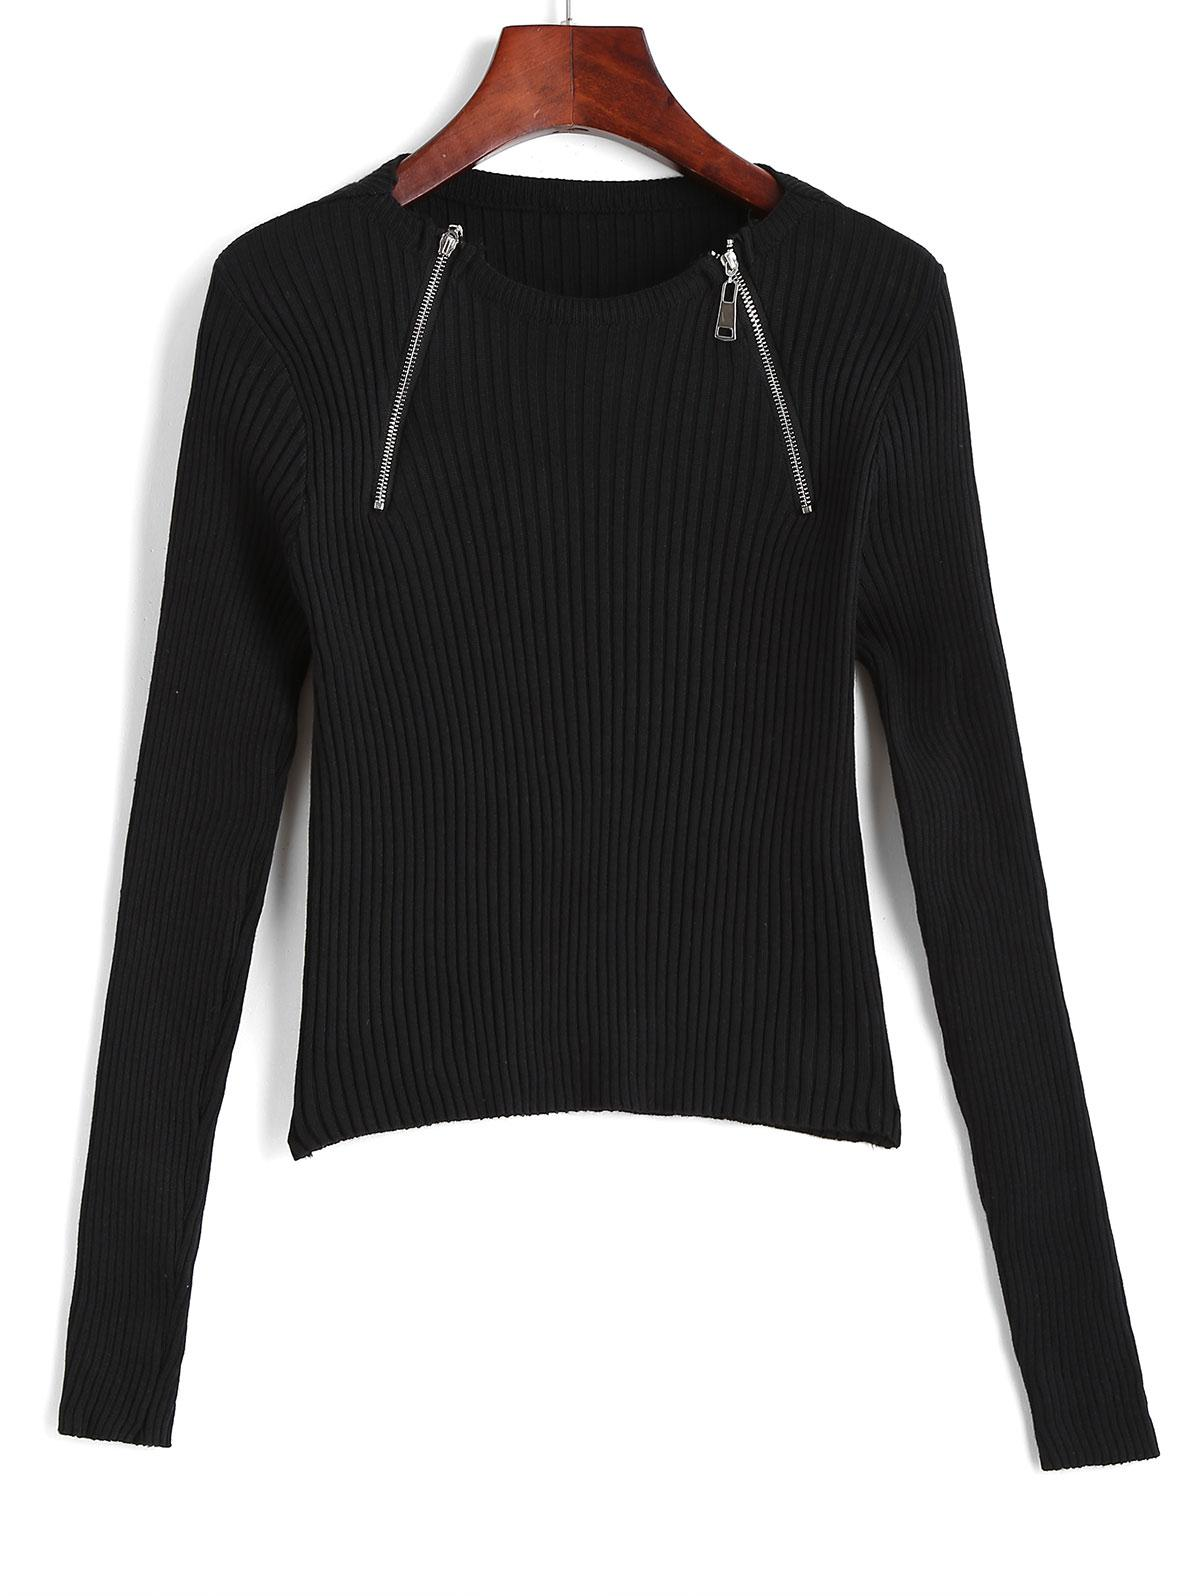 Wide Rib Half Zip Fitted Knitwear